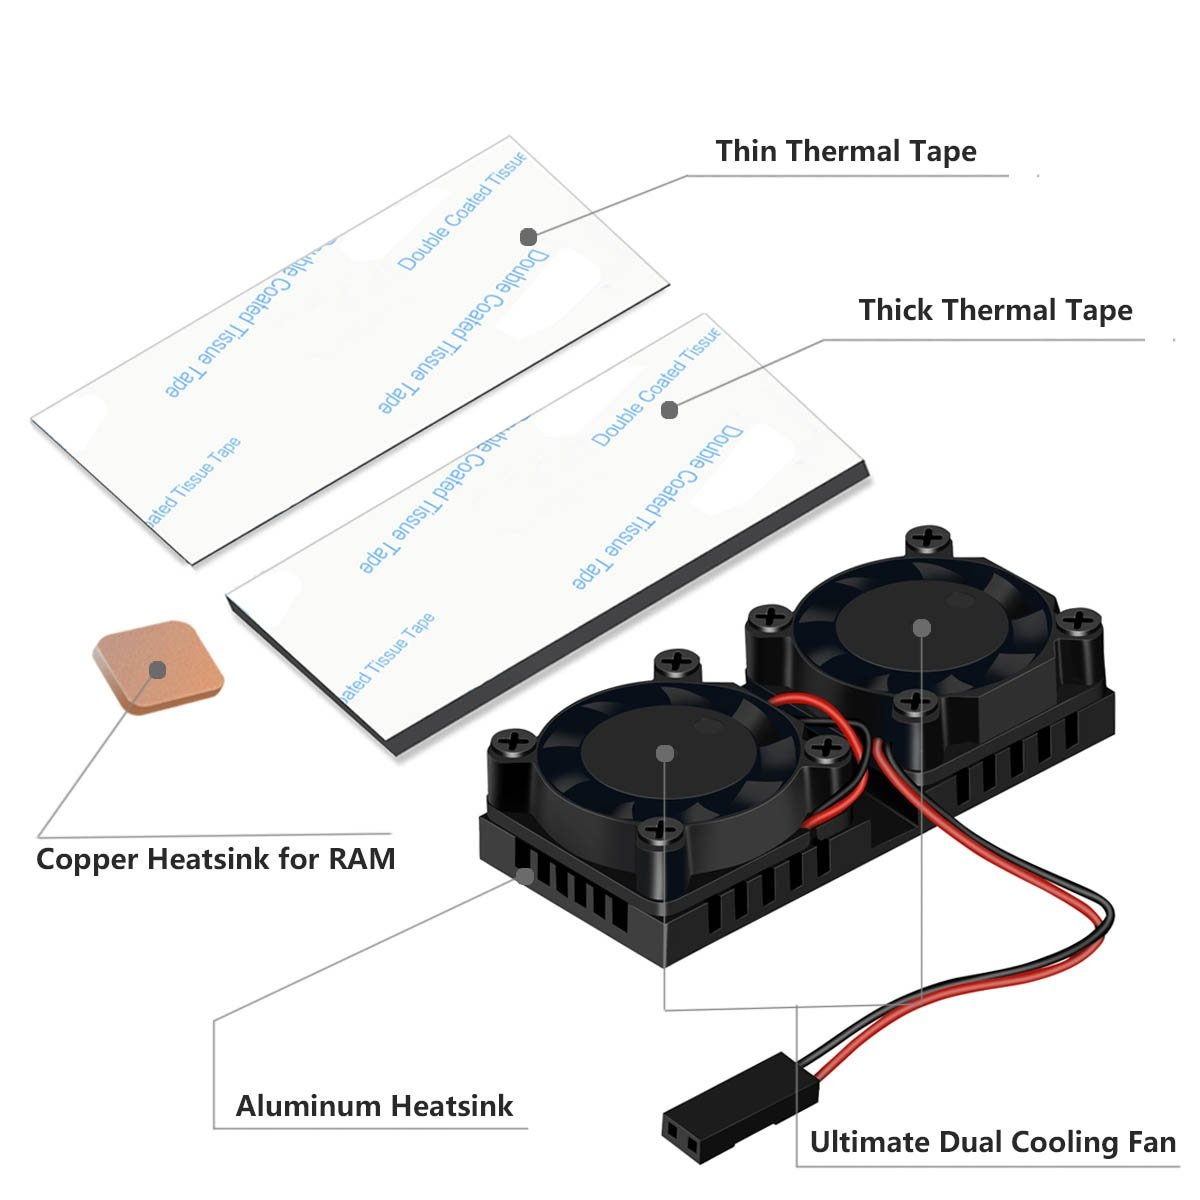 Raspberry Pi Fan Iuniker Heatsink Dual Circuit Board Cooling Replacement Kit And Ram Copper For 3 Model B 2 Not